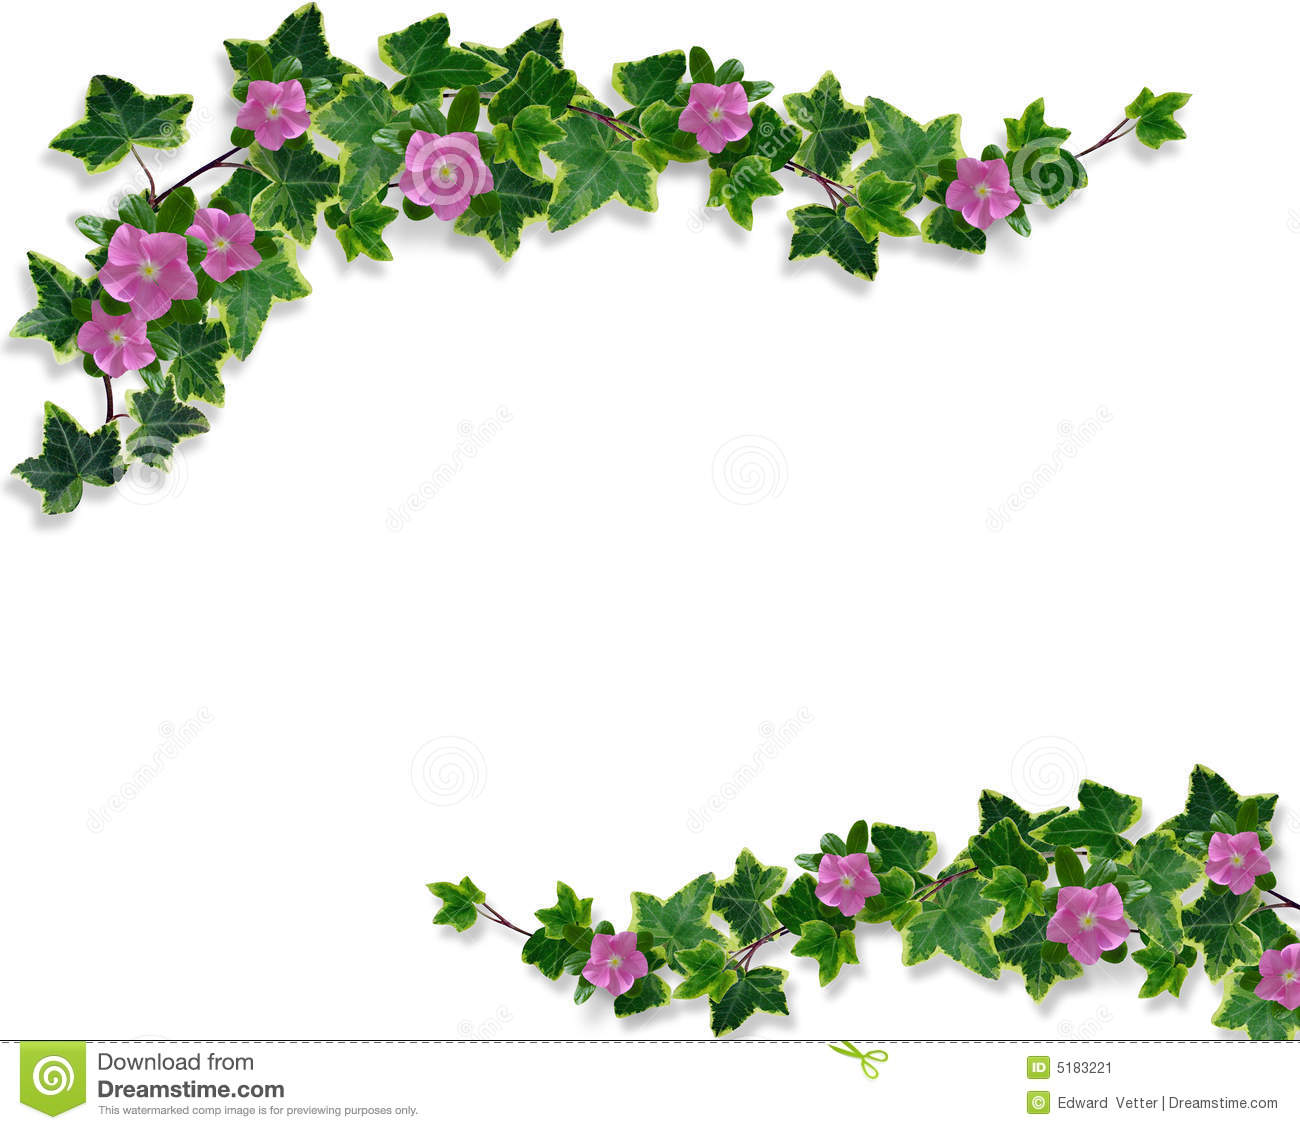 16 Flower Border Design Images - Flower Border Design ...